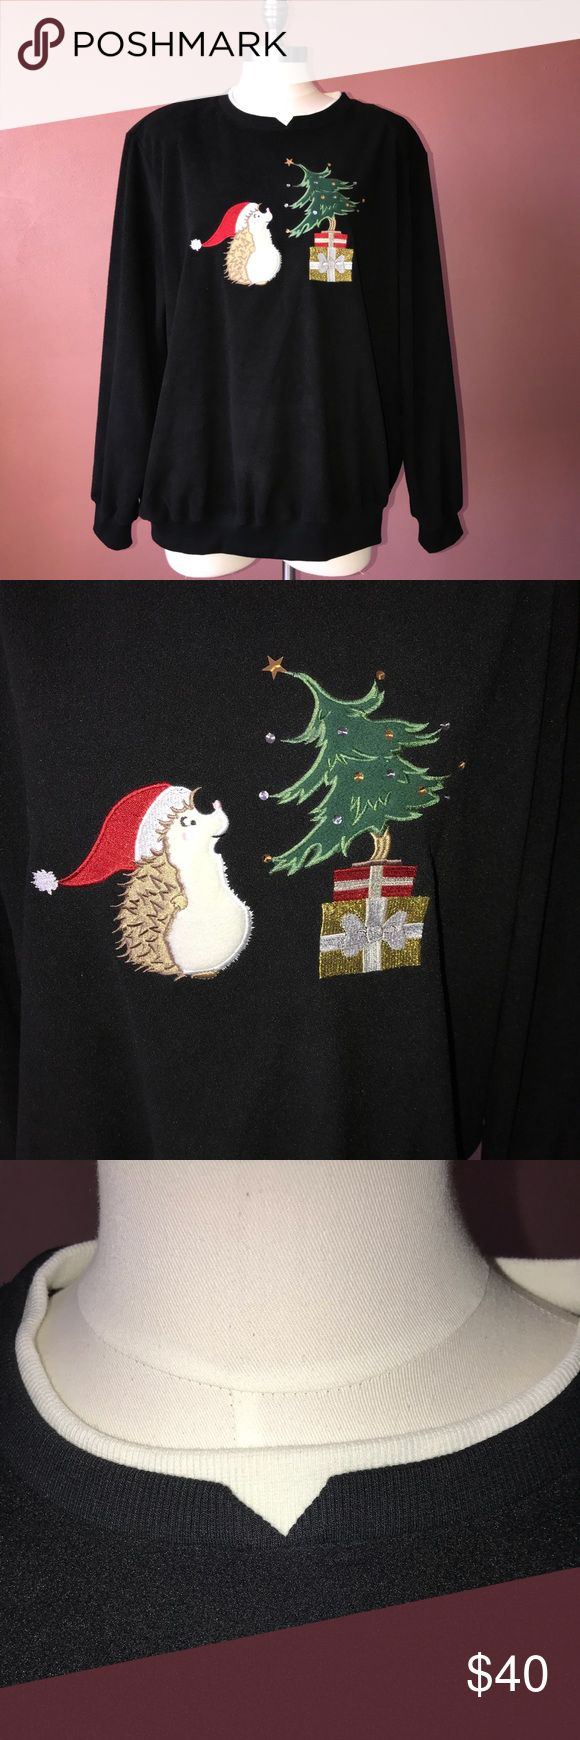 Alfred Dunner Christmas sweater -black sweater -Adorable graphics on the front -sequins on the Christmas tree -white under-collar -small v shape in the neck -perfect condition -Size 2x Alfred Dunner Sweaters